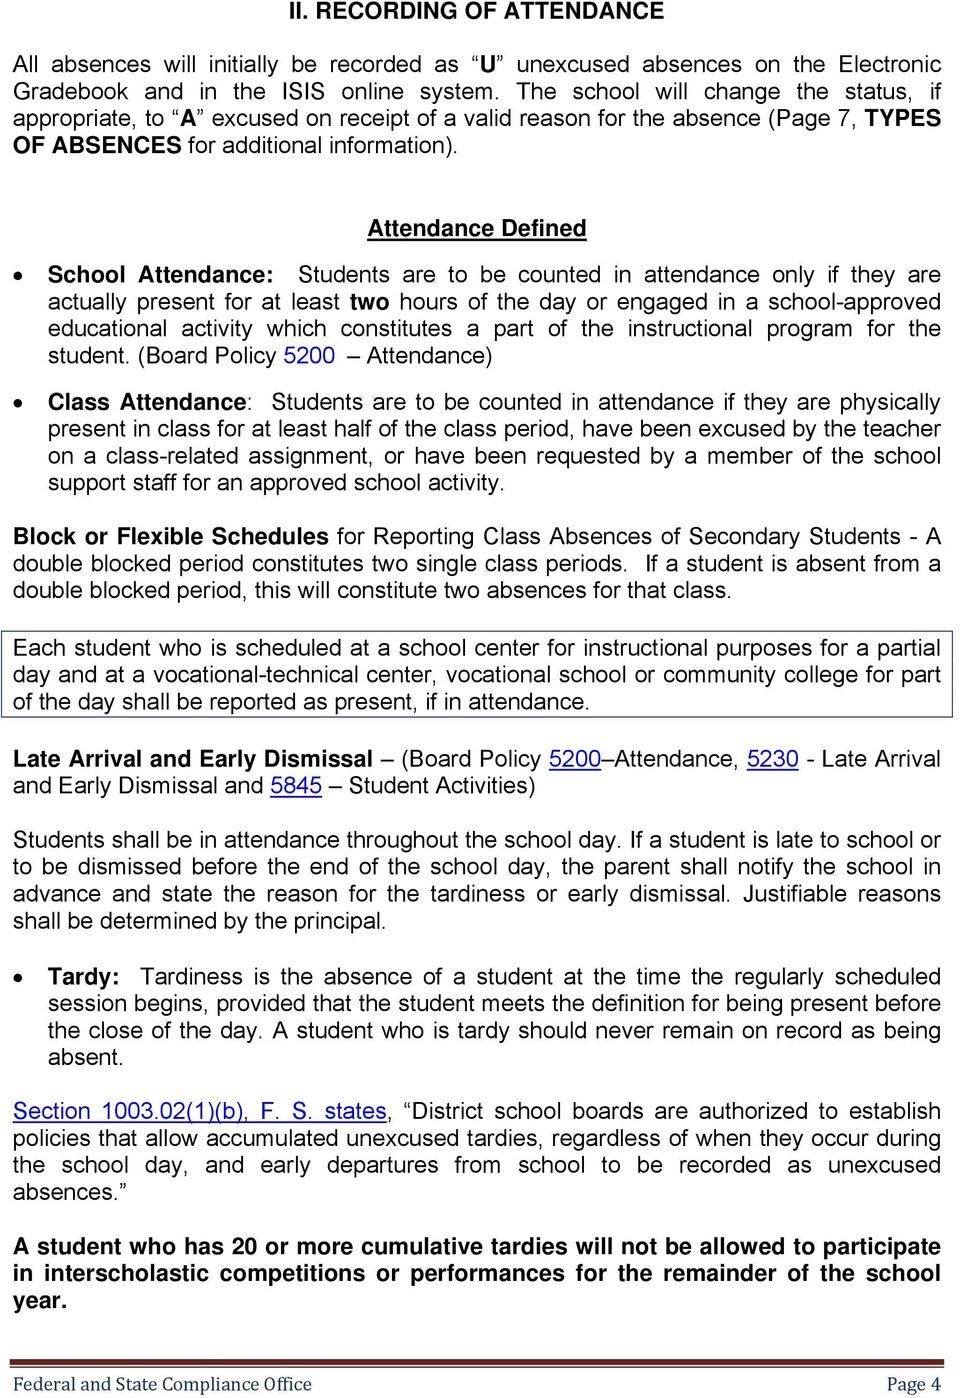 MIAMI-DADE COUNTY PUBLIC SCHOOLS Federal and State Compliance Office